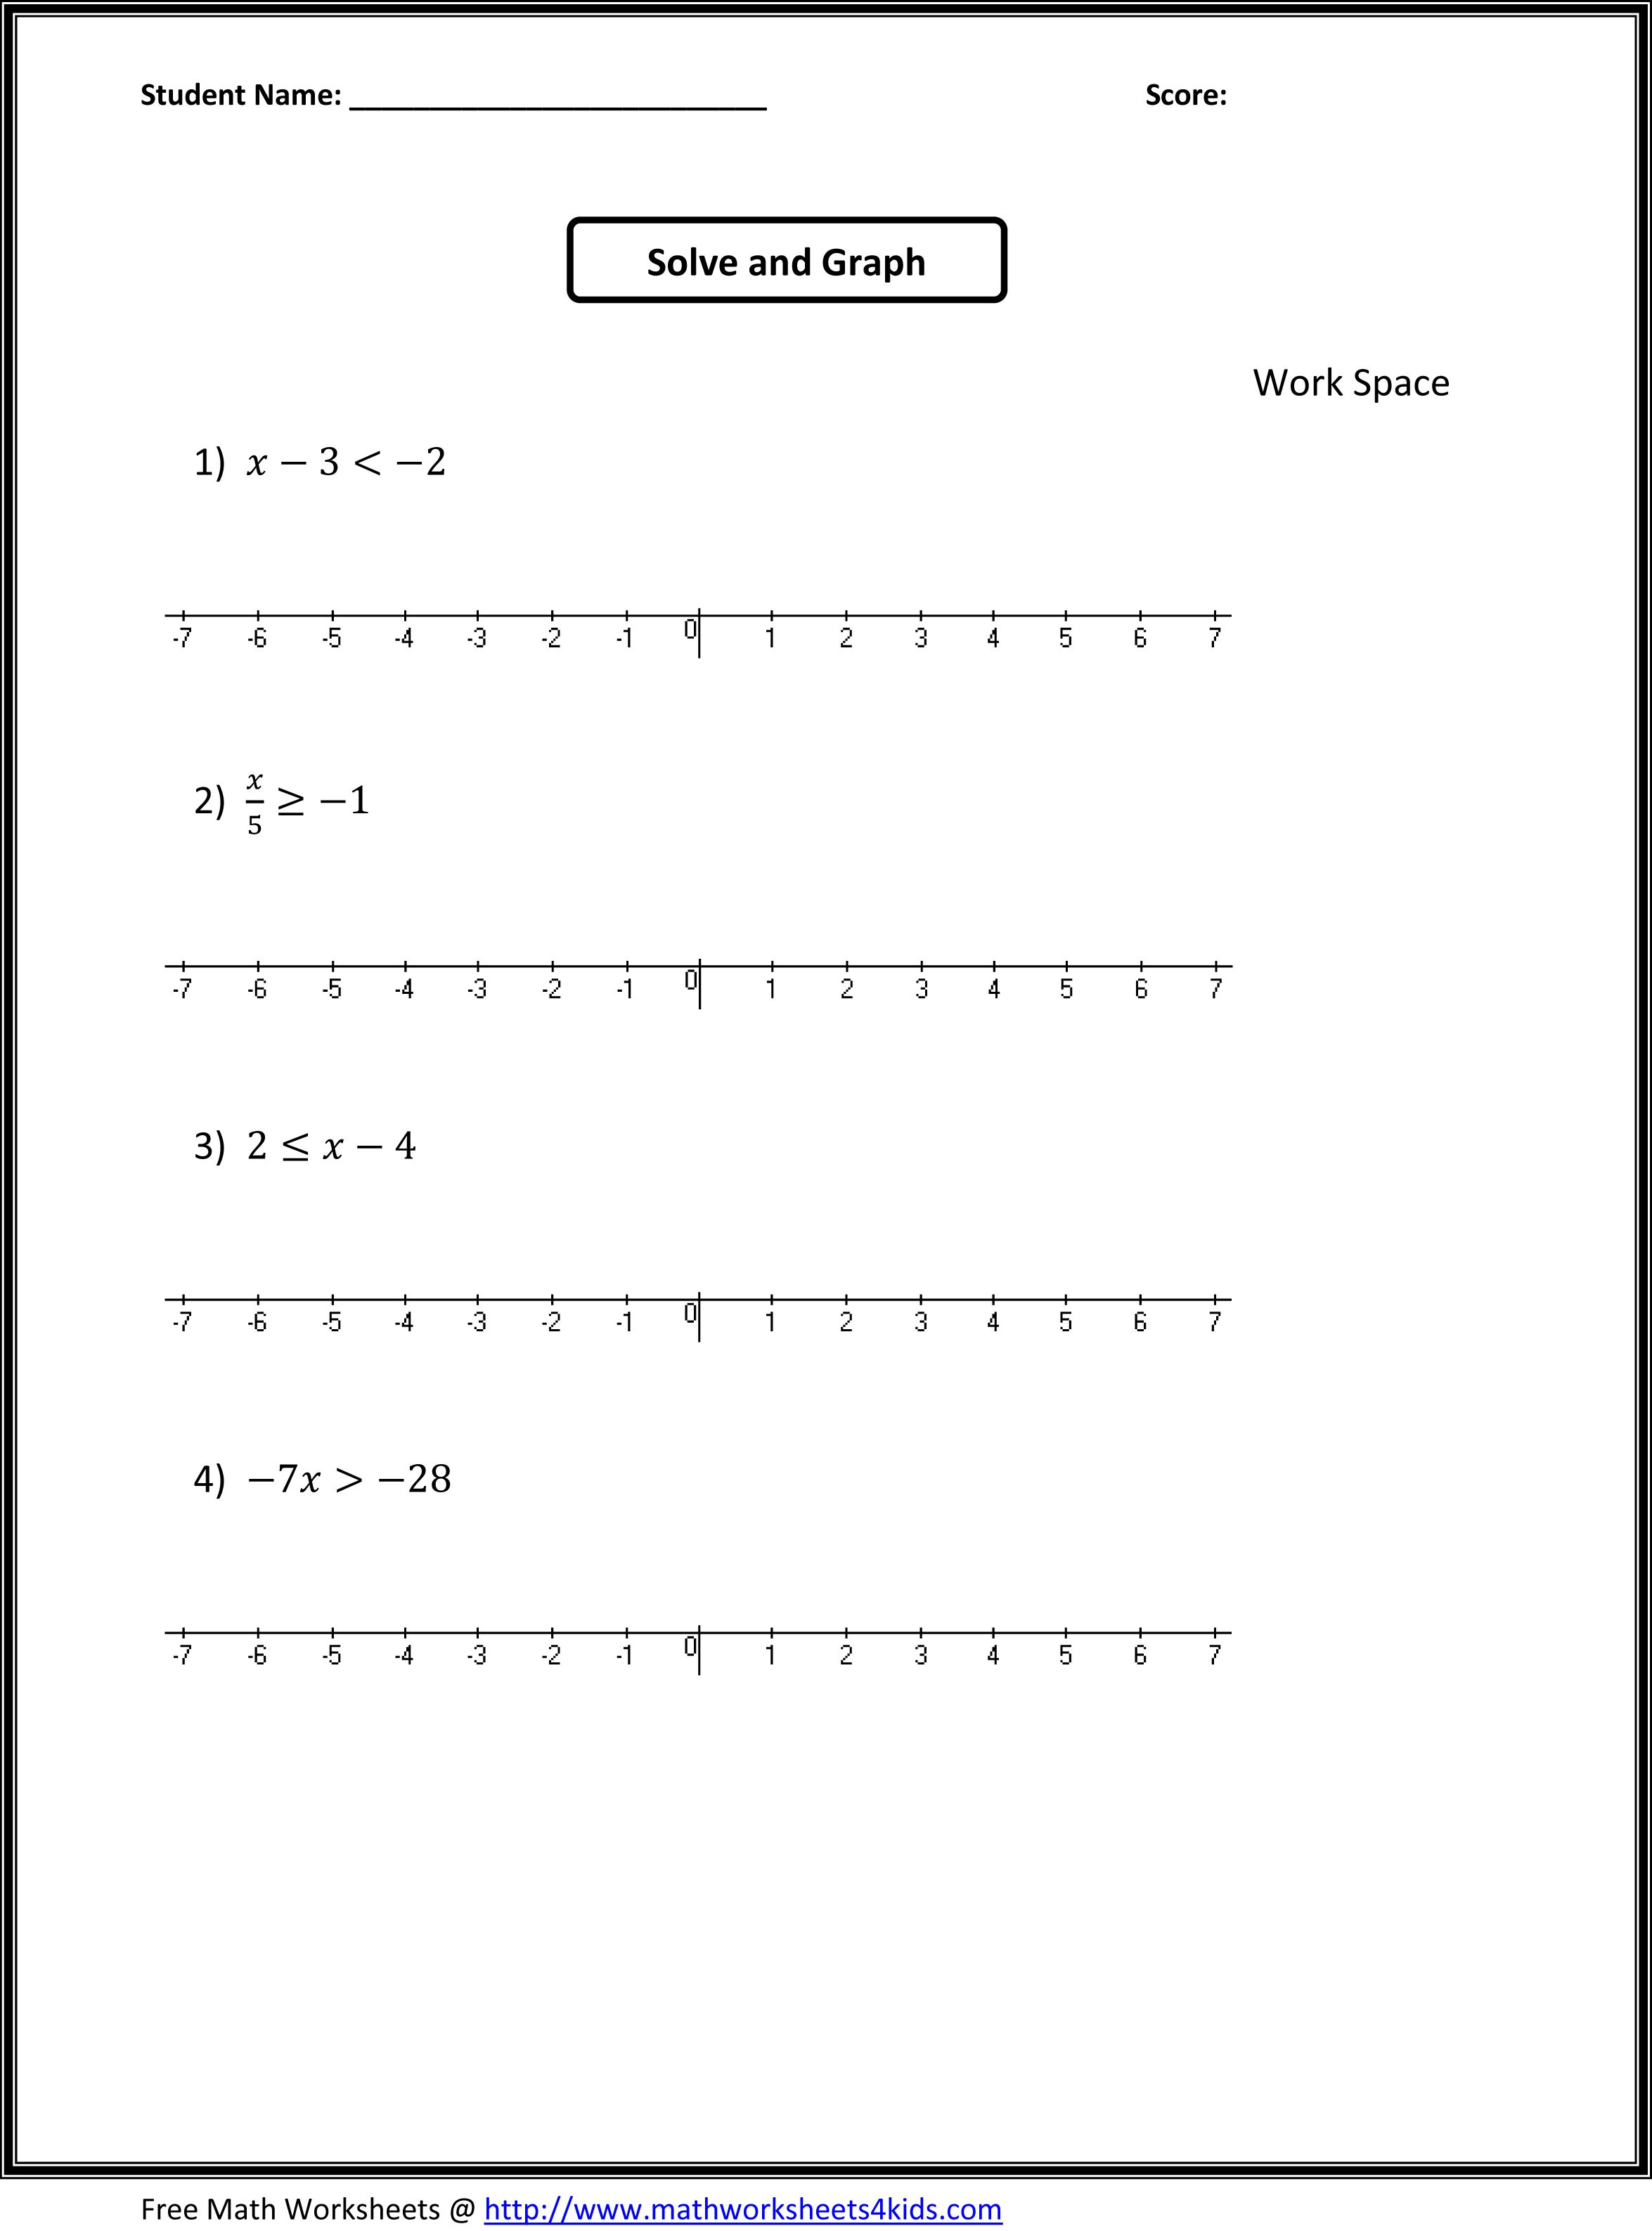 7th Grade Algebra Worksheets 7th Grade Math Worksheets – 7th Grade Maths Worksheets